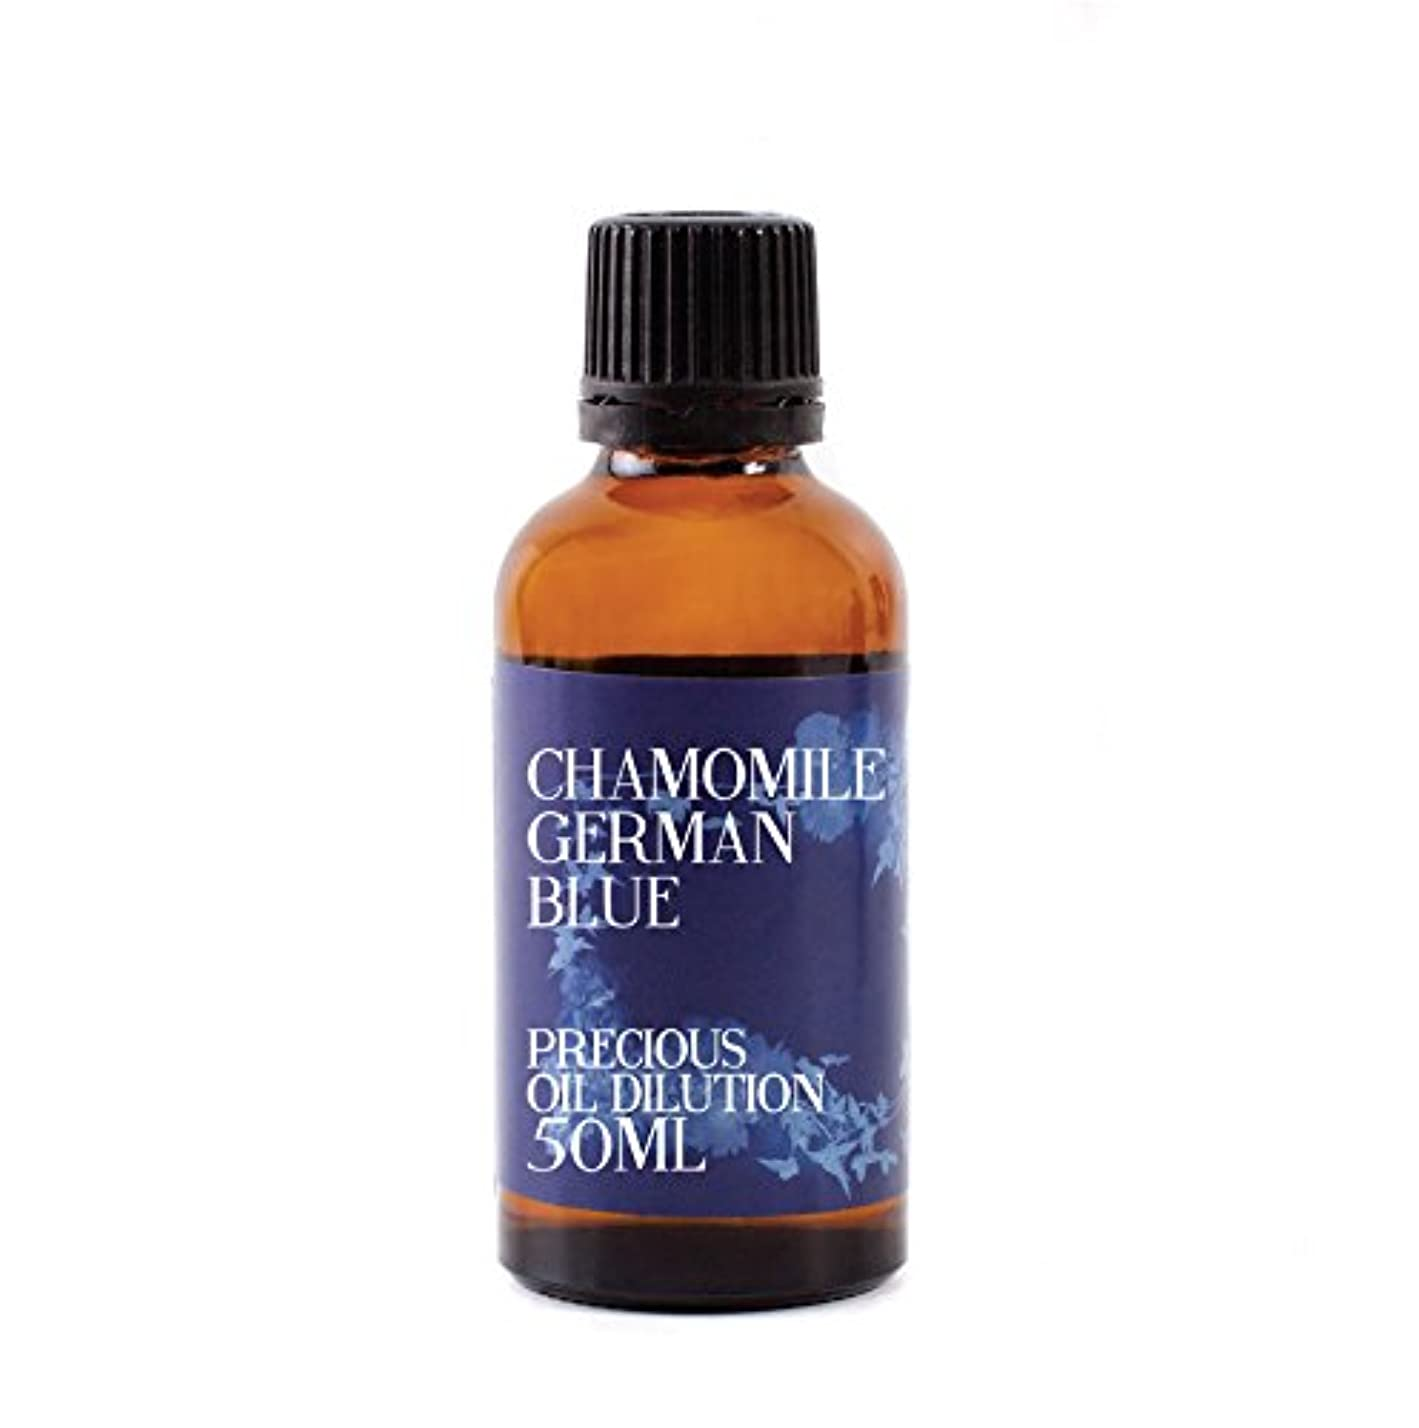 衛星インポート不承認Mystic Moments | Chamomile German Blue Essential Oil Dilution - 50ml - 3% Jojoba Blend